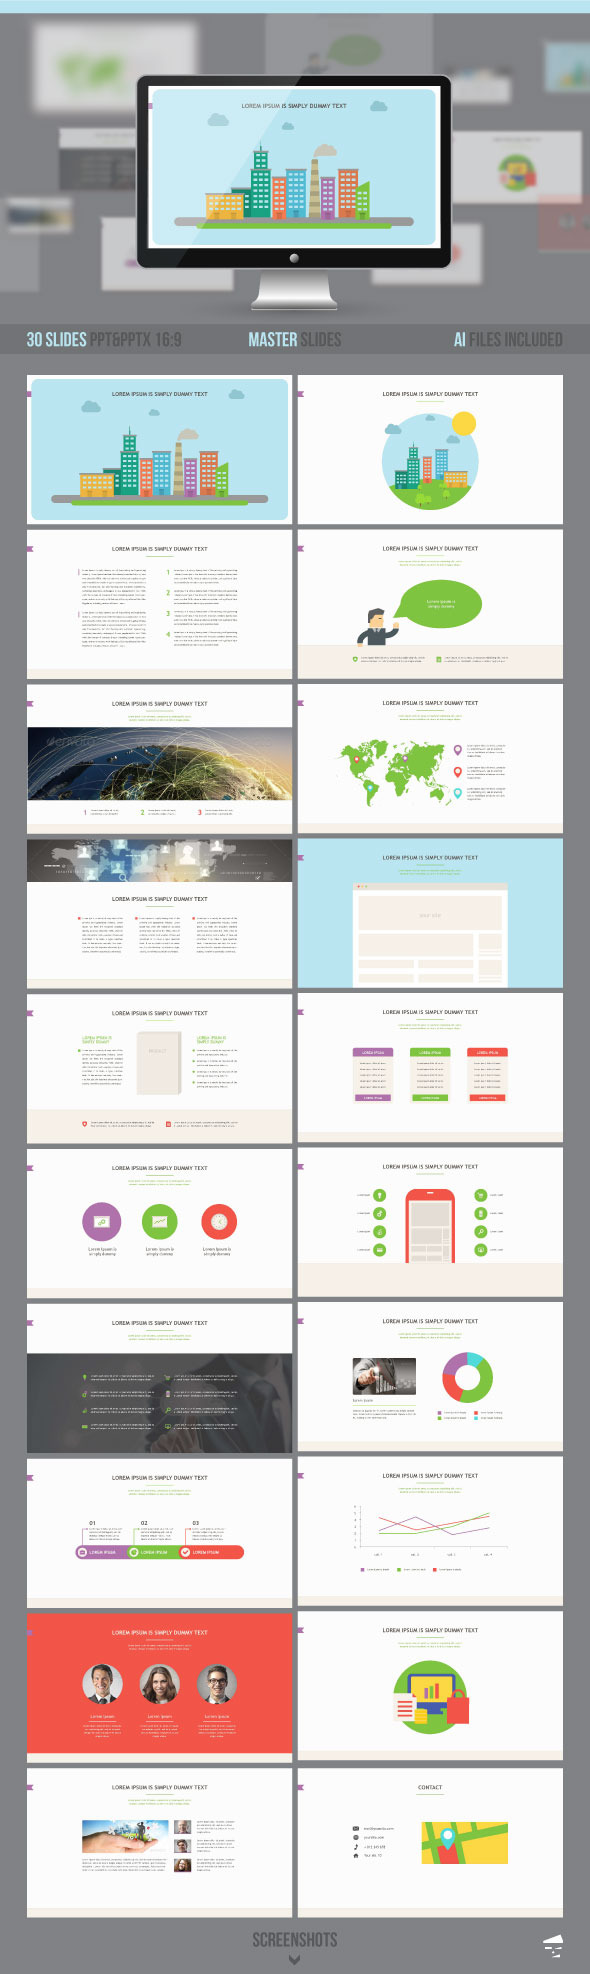 Business presentation template - Business PowerPoint Templates